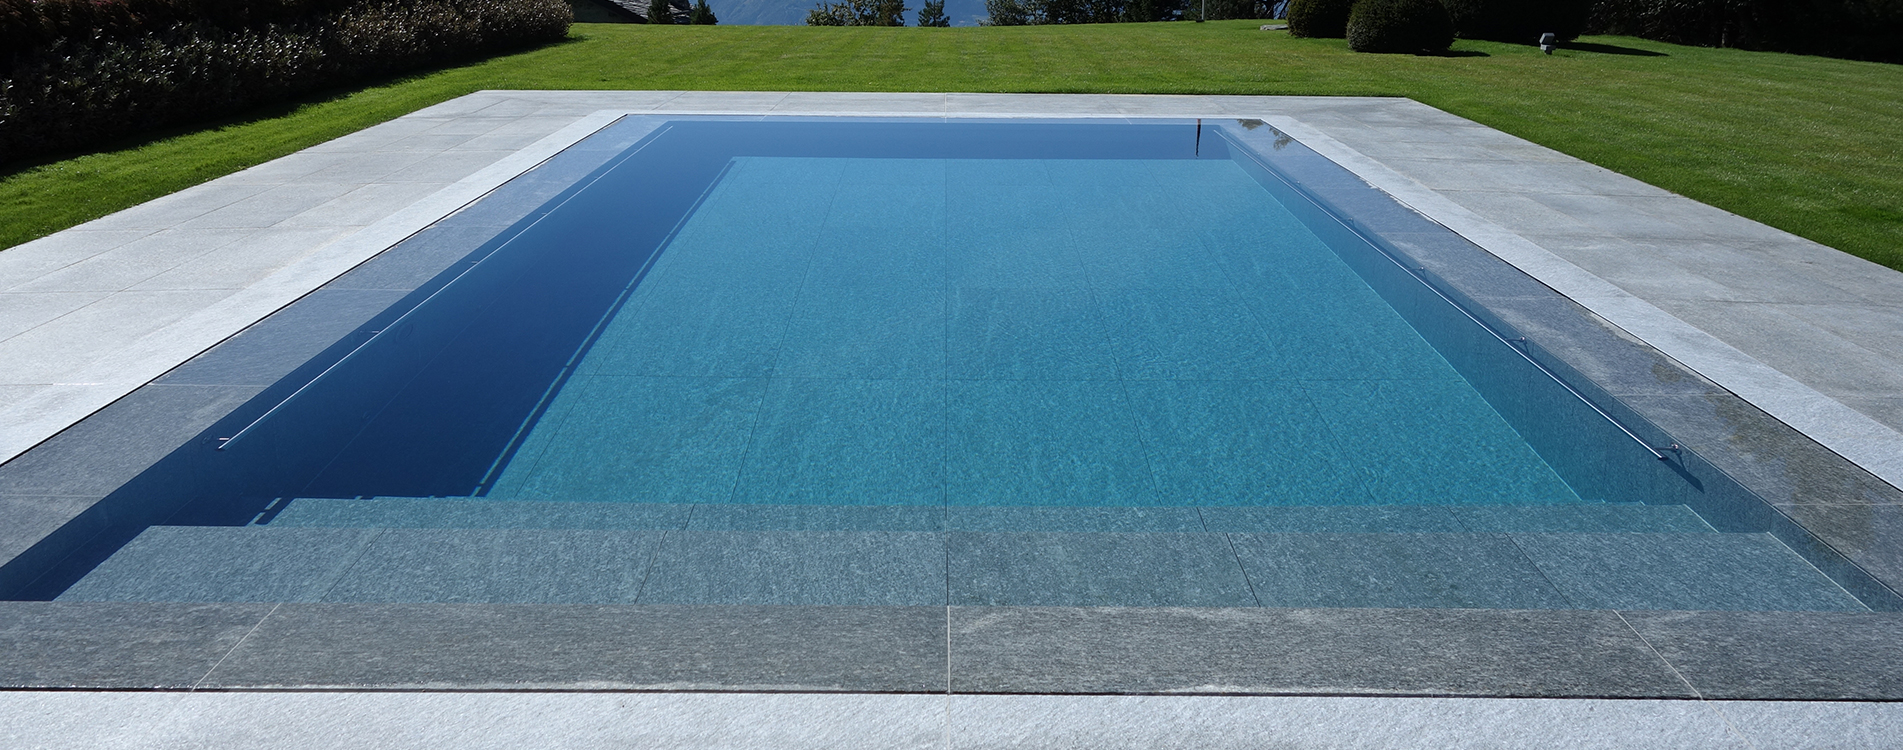 Construction piscine couverte pose dalles pav s b tons for Construction piscine